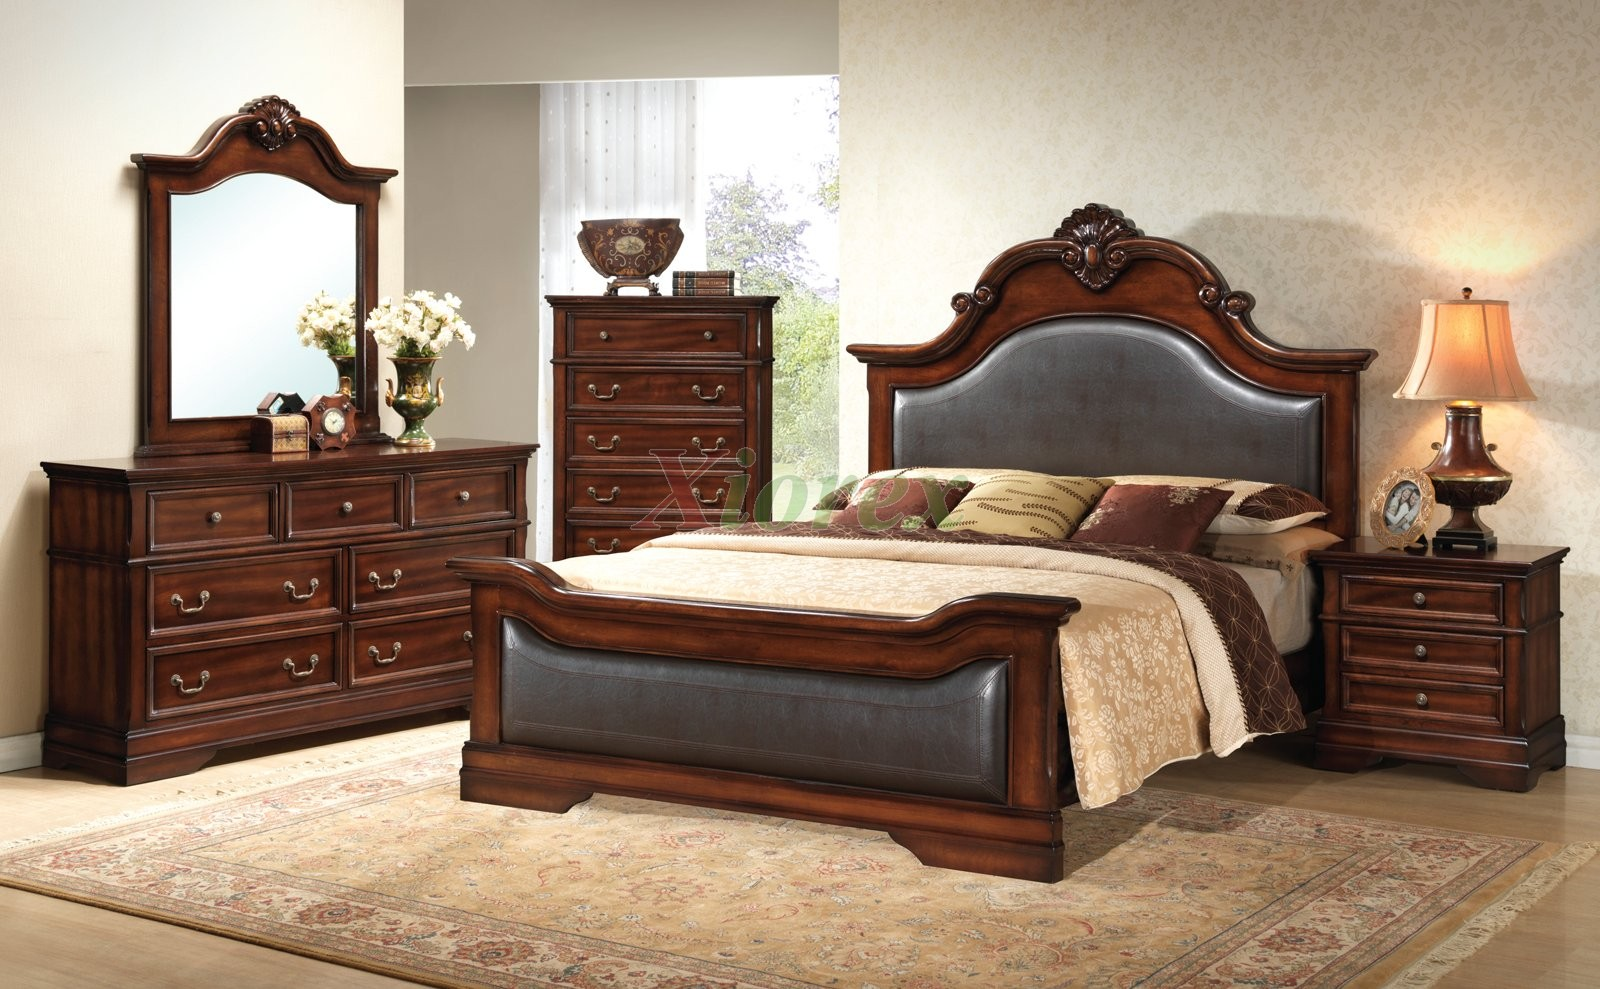 bedroom furniture set with leather headboard and footboard